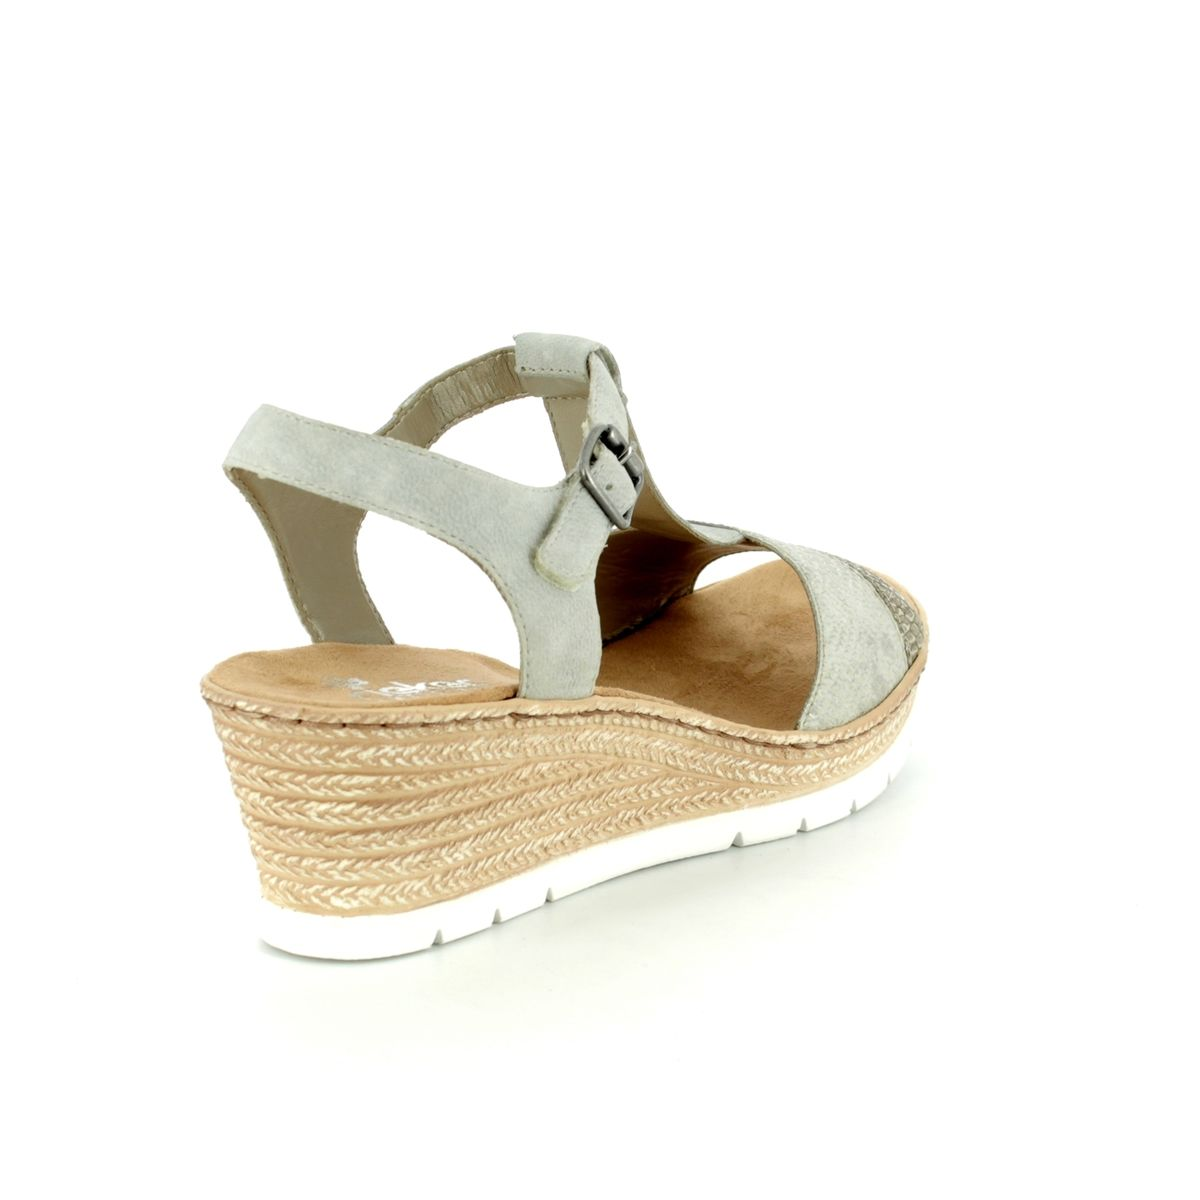 49f5c8e5cac Rieker Wedge Sandals - Silver - 61944-64 FAWNEE